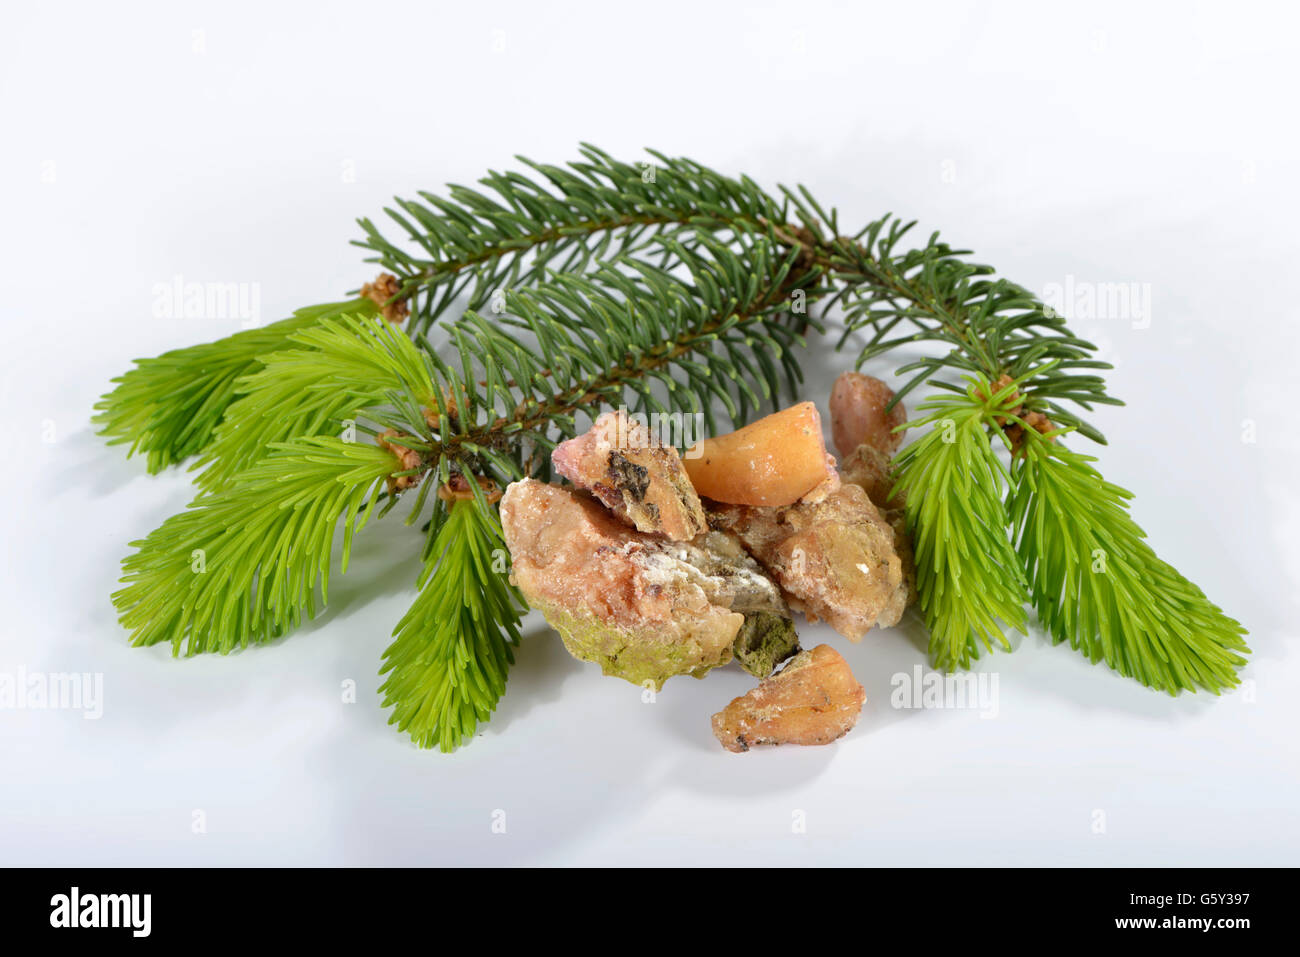 Spruce resin / (Picea abies) - Stock Image